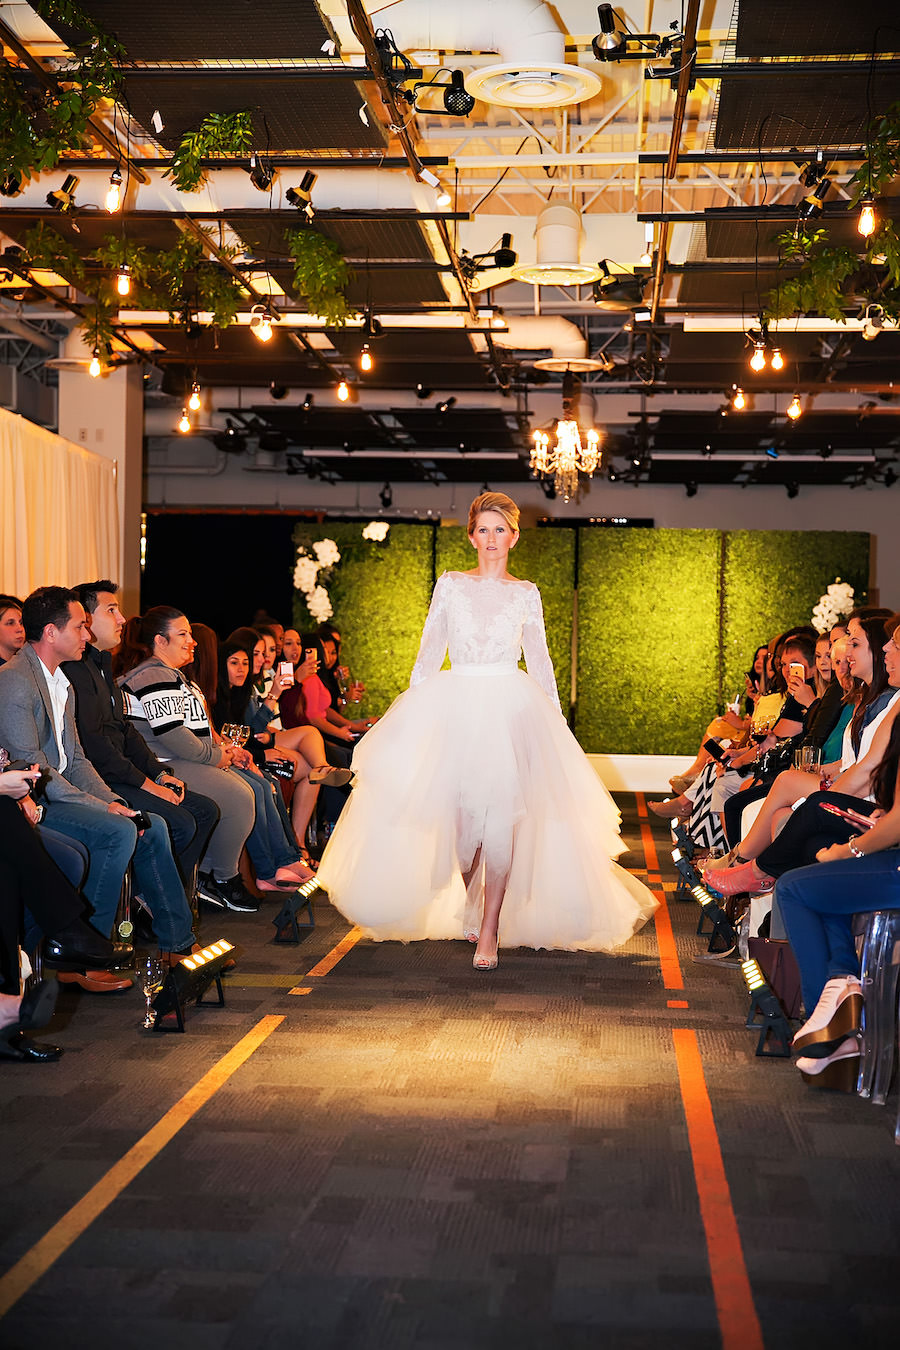 White Lace Alyne Lis High Low Wedding Dress | Marry Me Tampa Bay Wedding Week Bridal Fashion Runway Show | Tampa Bay Wedding Photographer Limelight Photography | Wedding Planner Glitz Events | Hair and Makeup Artist Michele Renee The Studio | Couture Wedding Dress Shop Isabel O'Neil Bridal